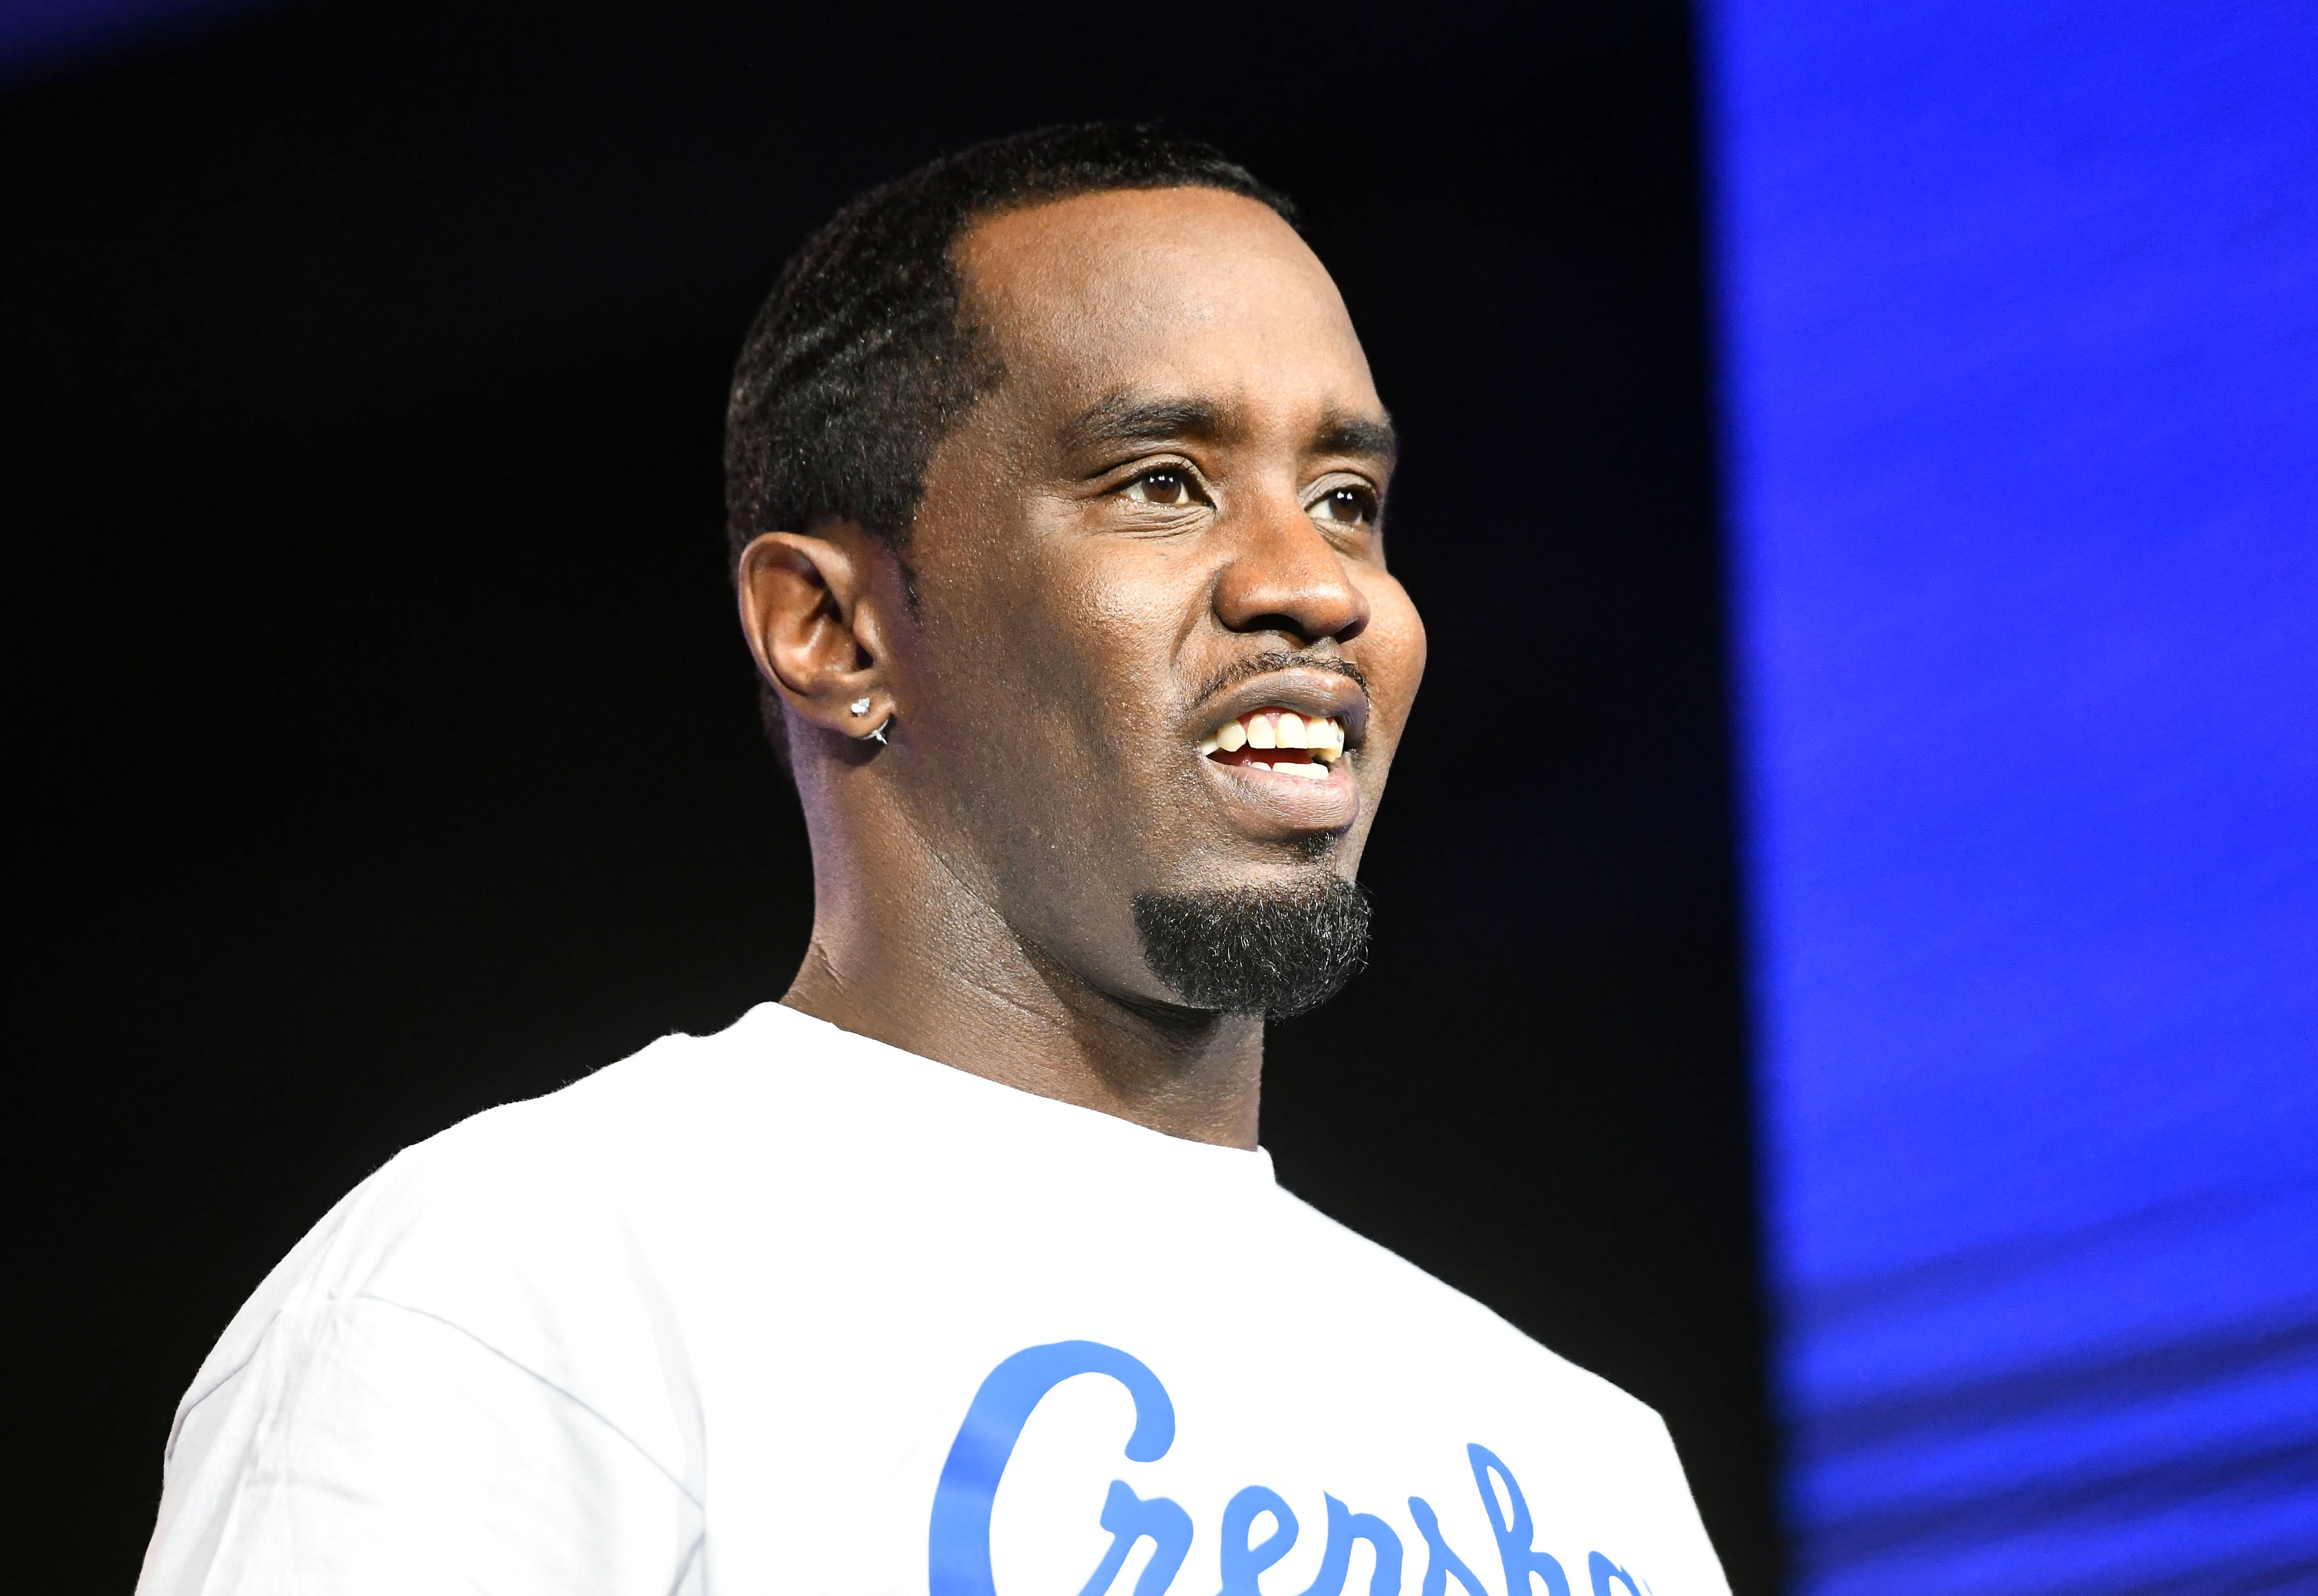 Rapper Sean 'Diddy' Combs attends the REVOLT & AT&T Summit on October 25, 2019.   Photo: Getty Images